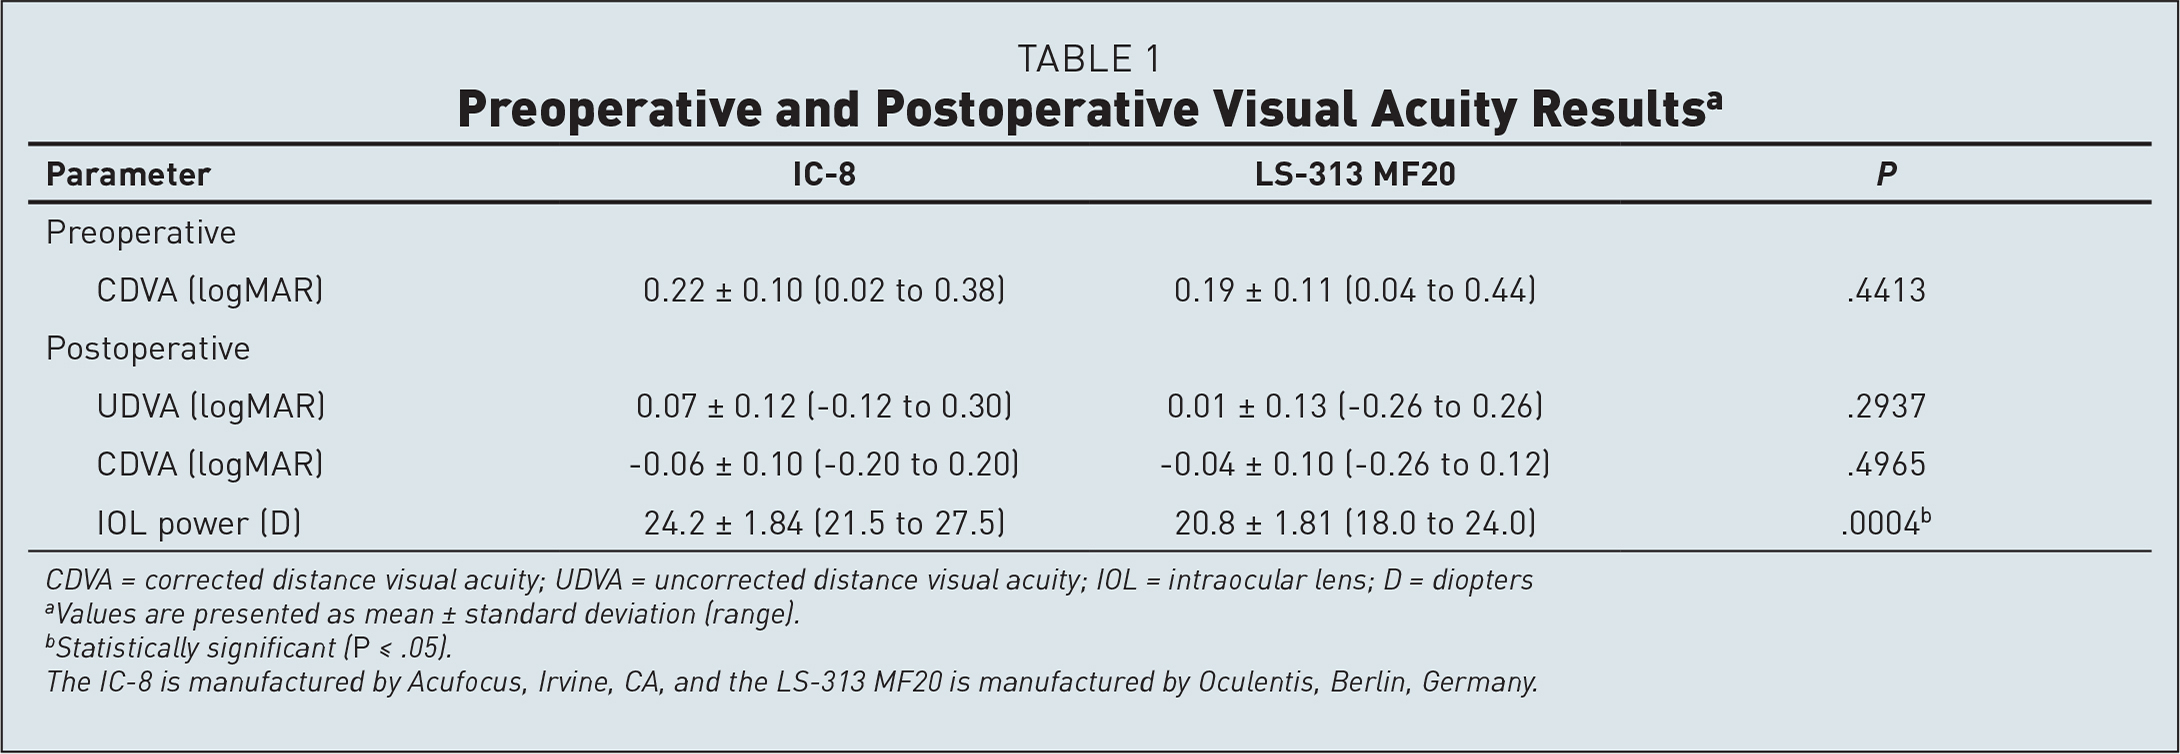 Preoperative and Postoperative Visual Acuity Resultsa